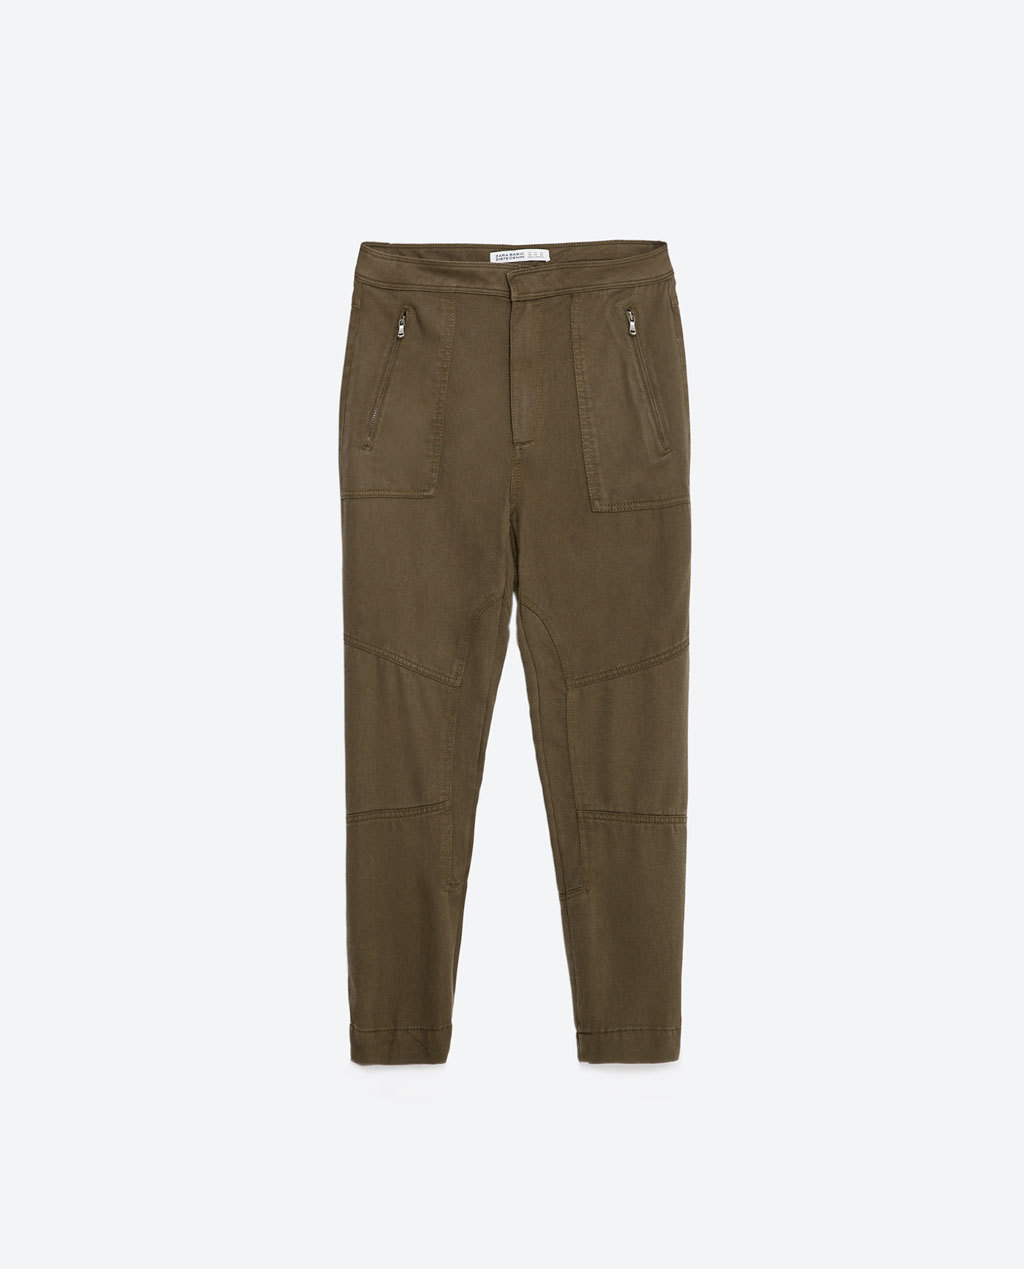 Cargo Trousers - length: standard; pattern: plain; waist: high rise; style: cargo; predominant colour: khaki; occasions: casual; fibres: cotton - stretch; texture group: cotton feel fabrics; fit: slim leg; pattern type: fabric; season: s/s 2016; wardrobe: basic